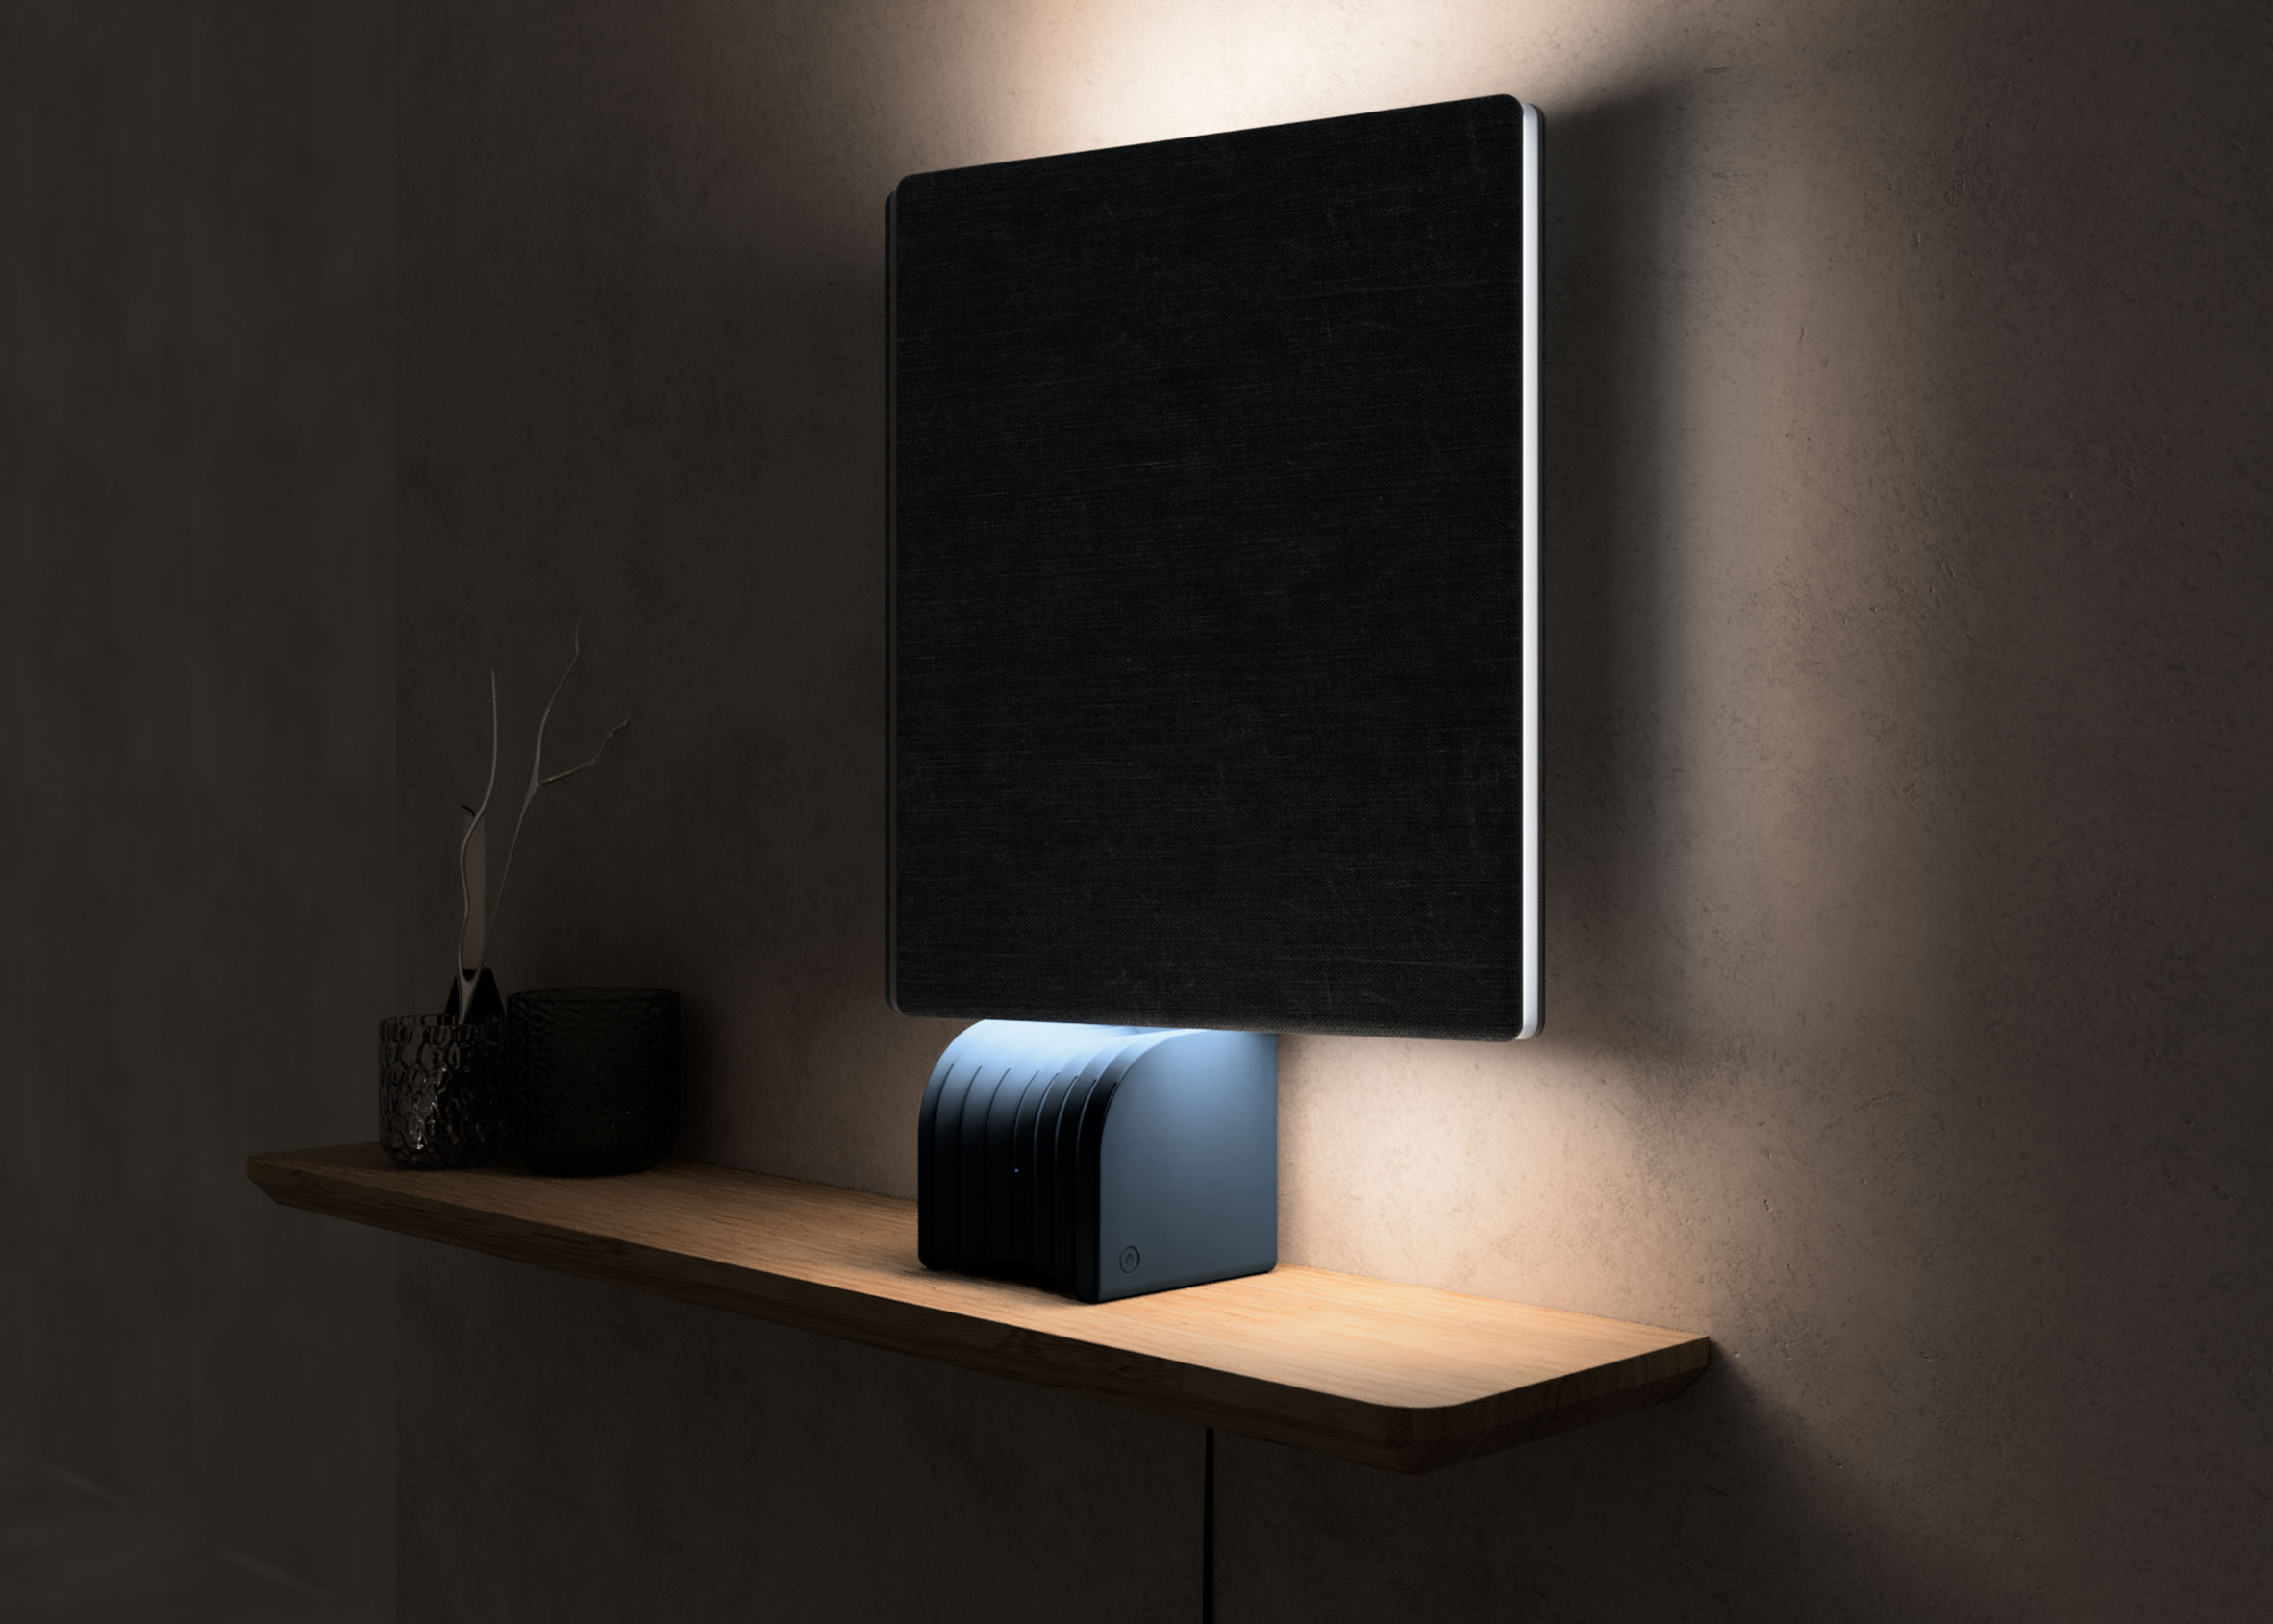 Signal by Jean-Michel Rochette a finalist in the Dezeen and LG Display OLED Go competition